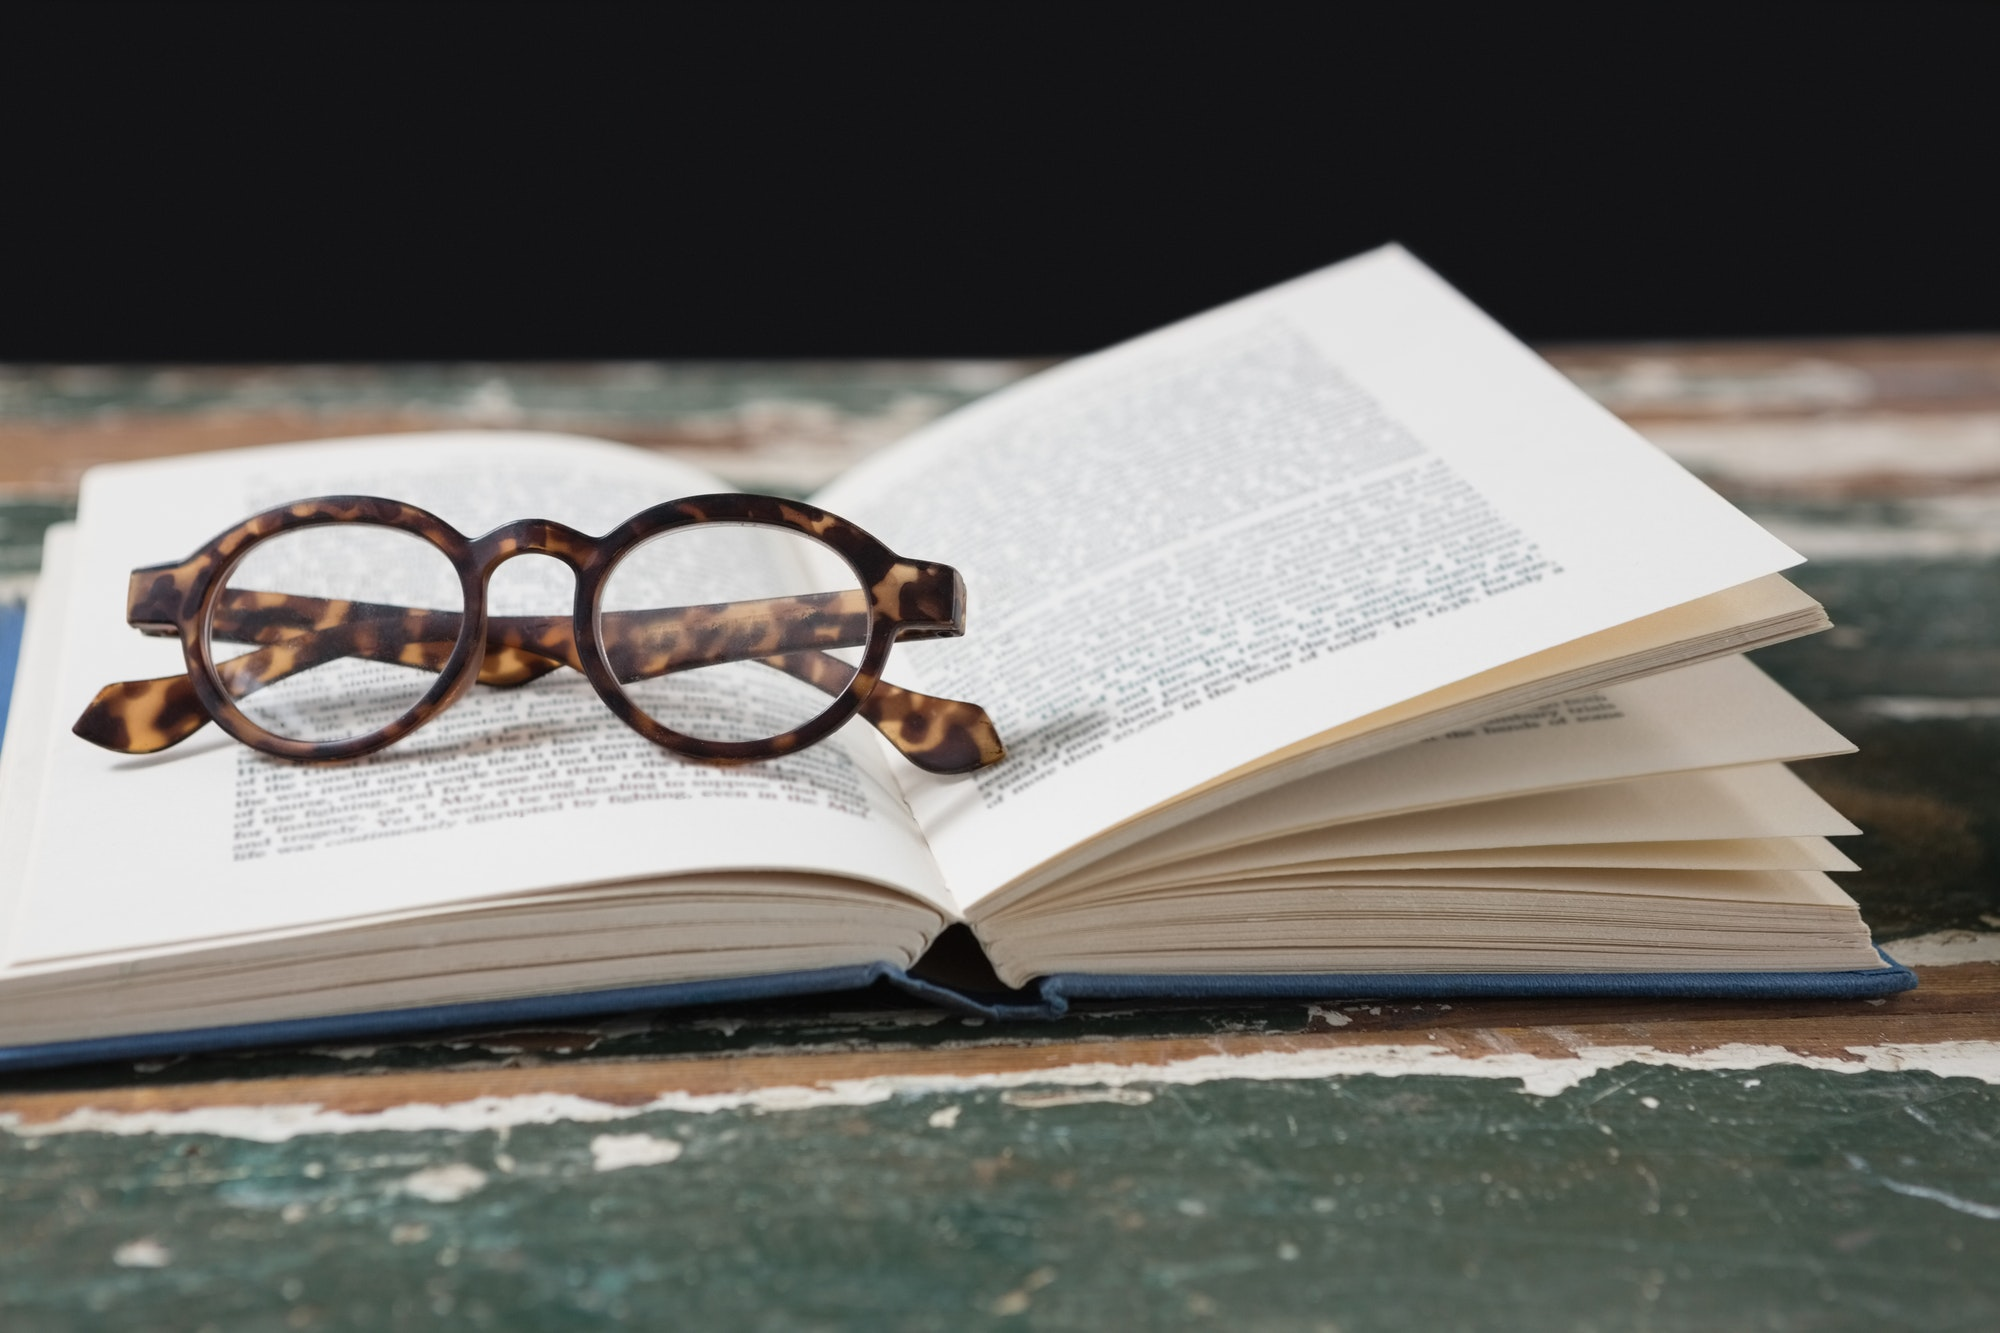 Spectacles on open book